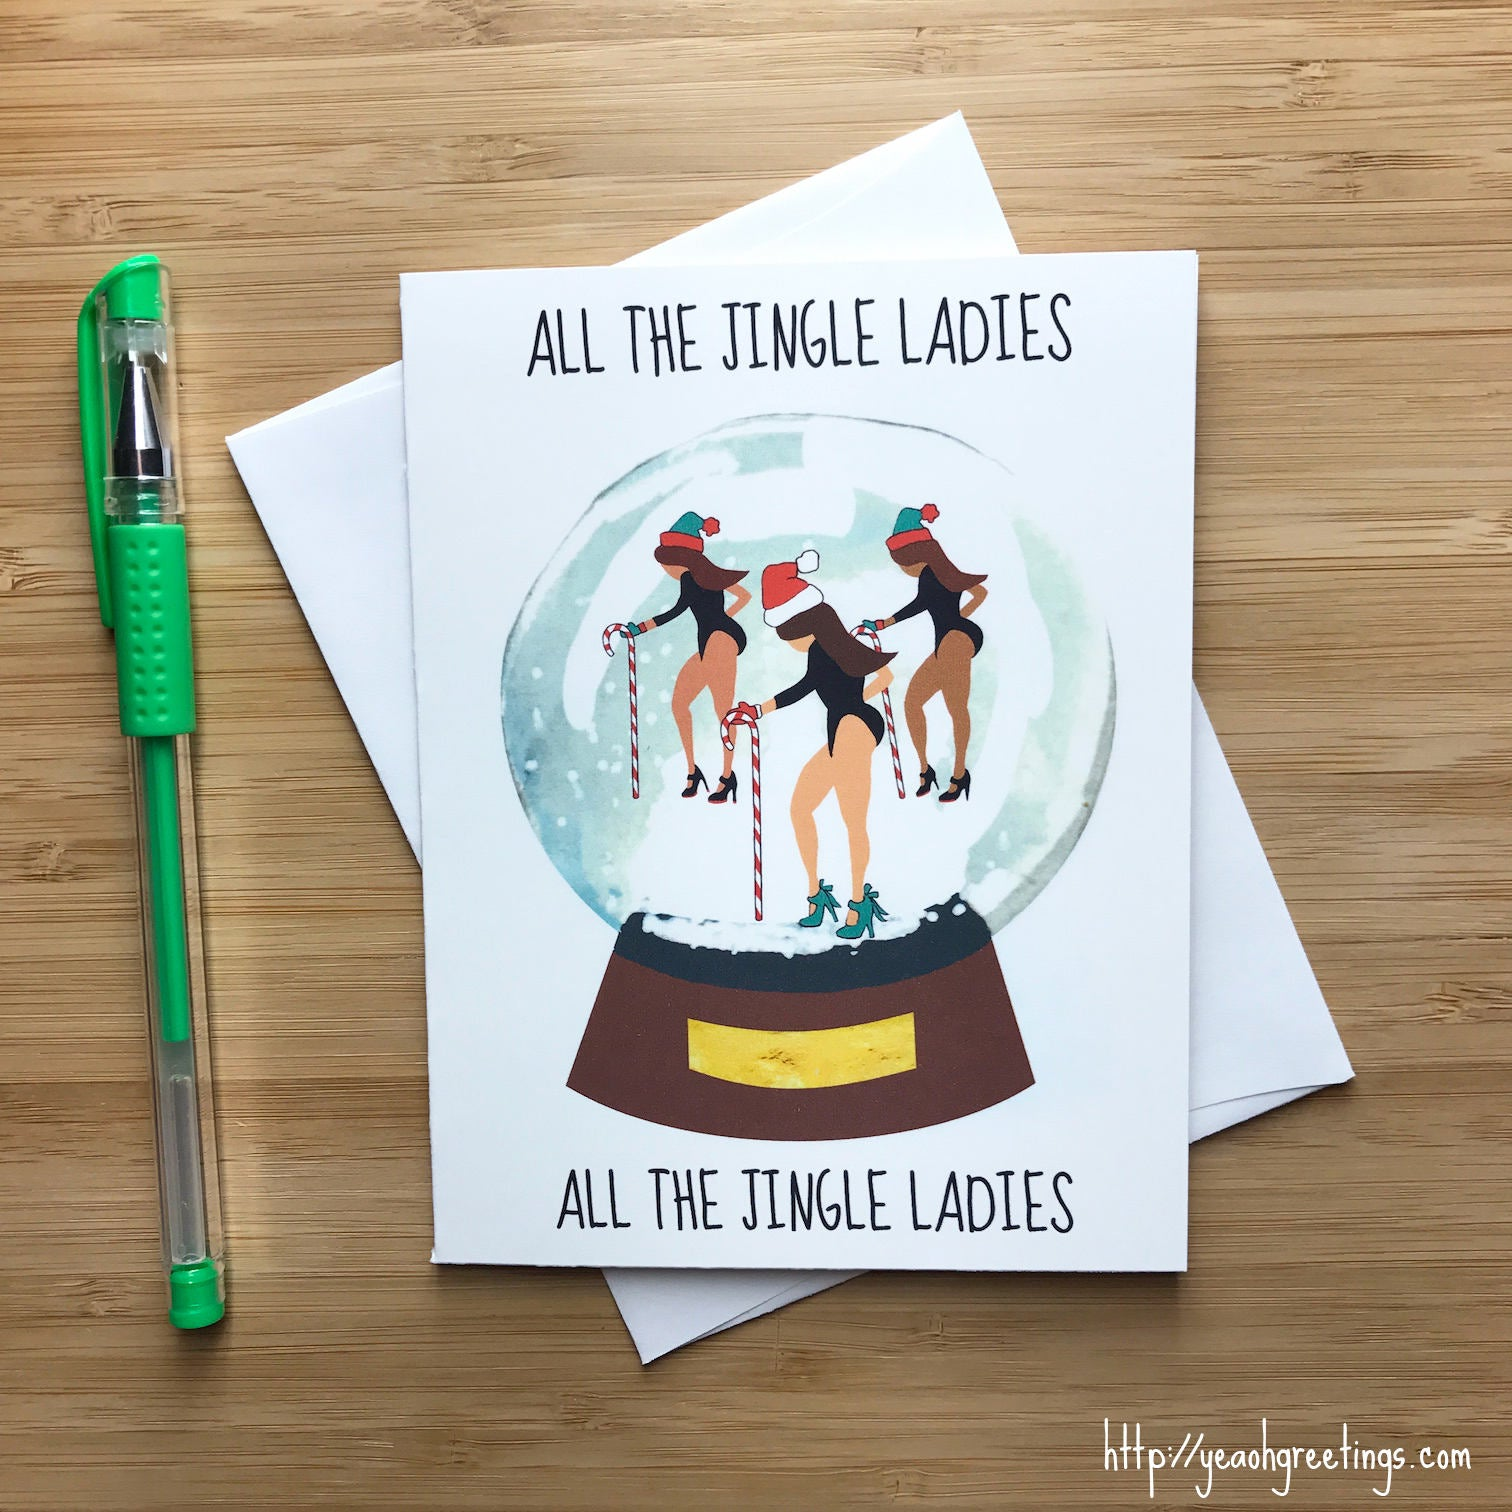 Funny Christmas Card Messages.All The Jingle Ladies Christmas Card